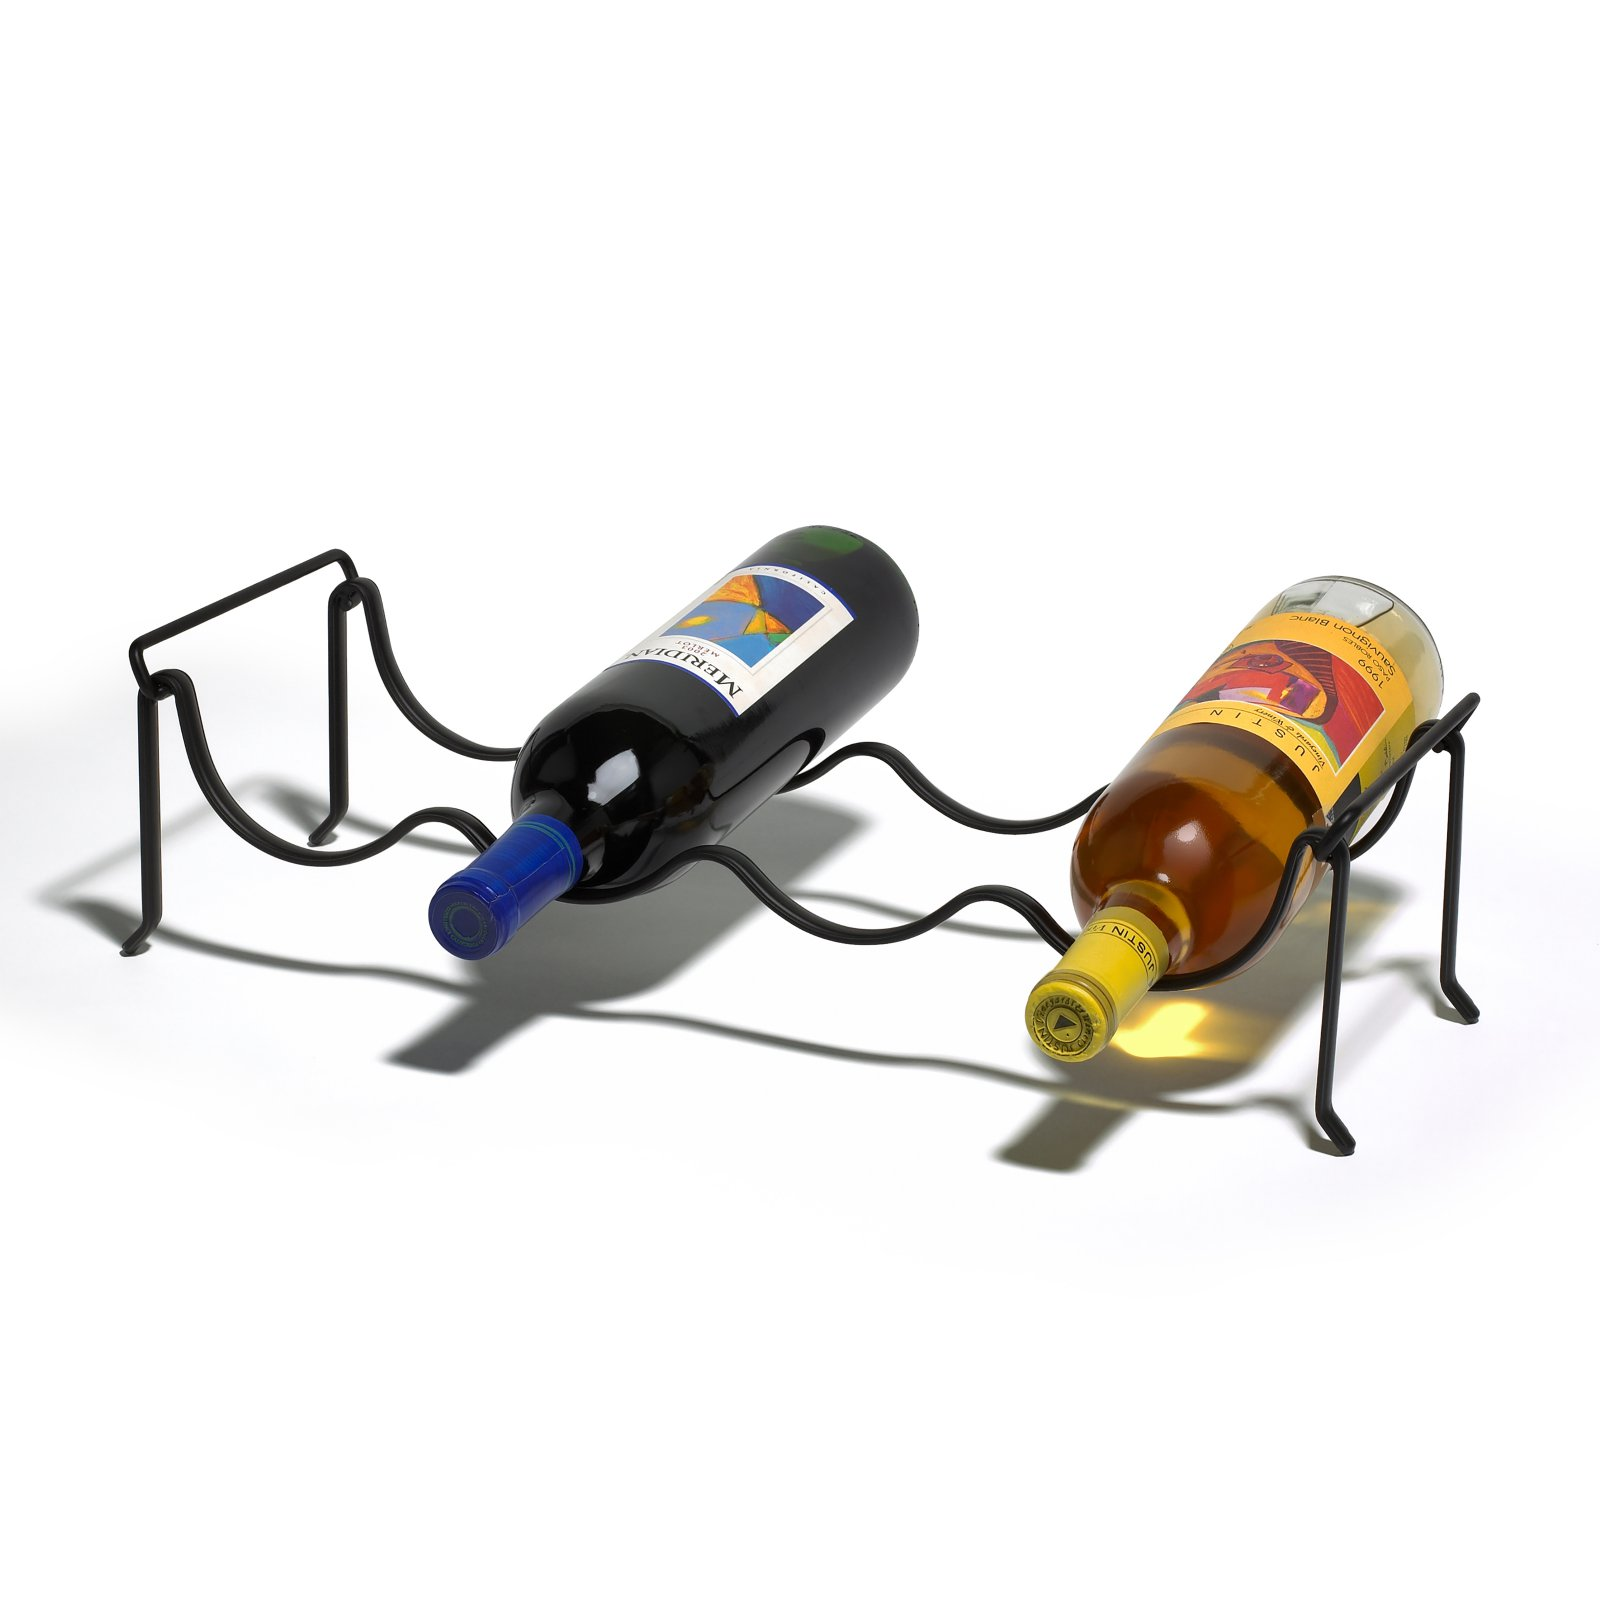 Spectrum Diversified Ashley Stacking 4-Bottle Wine Rack by Spectrum Diversified Designs LLC